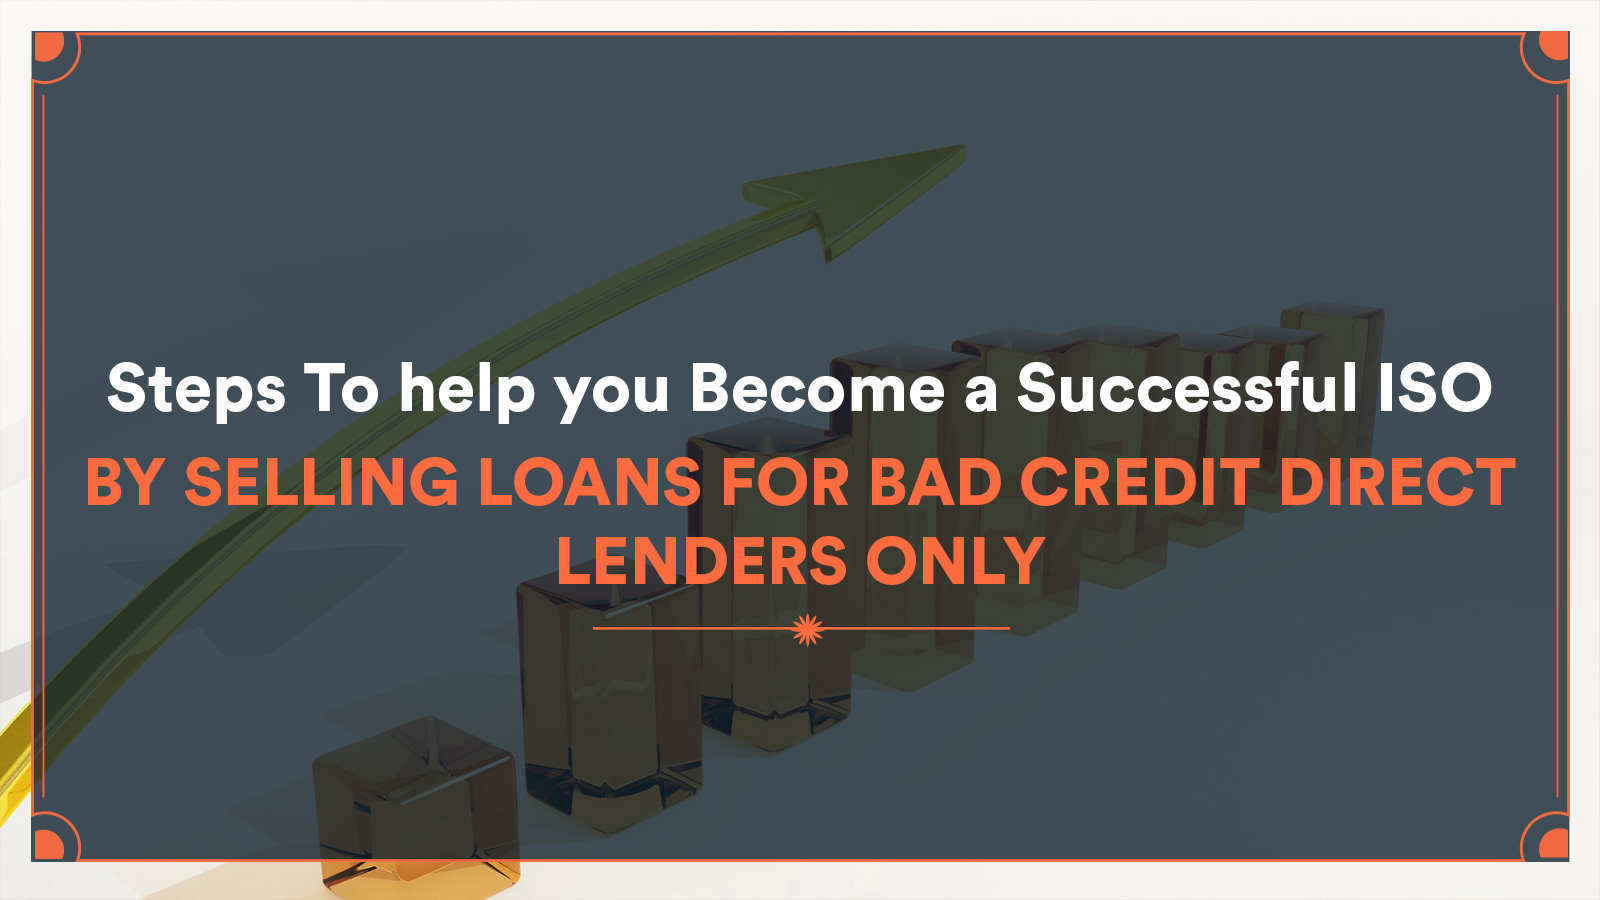 loans for bad credit direct lenders only